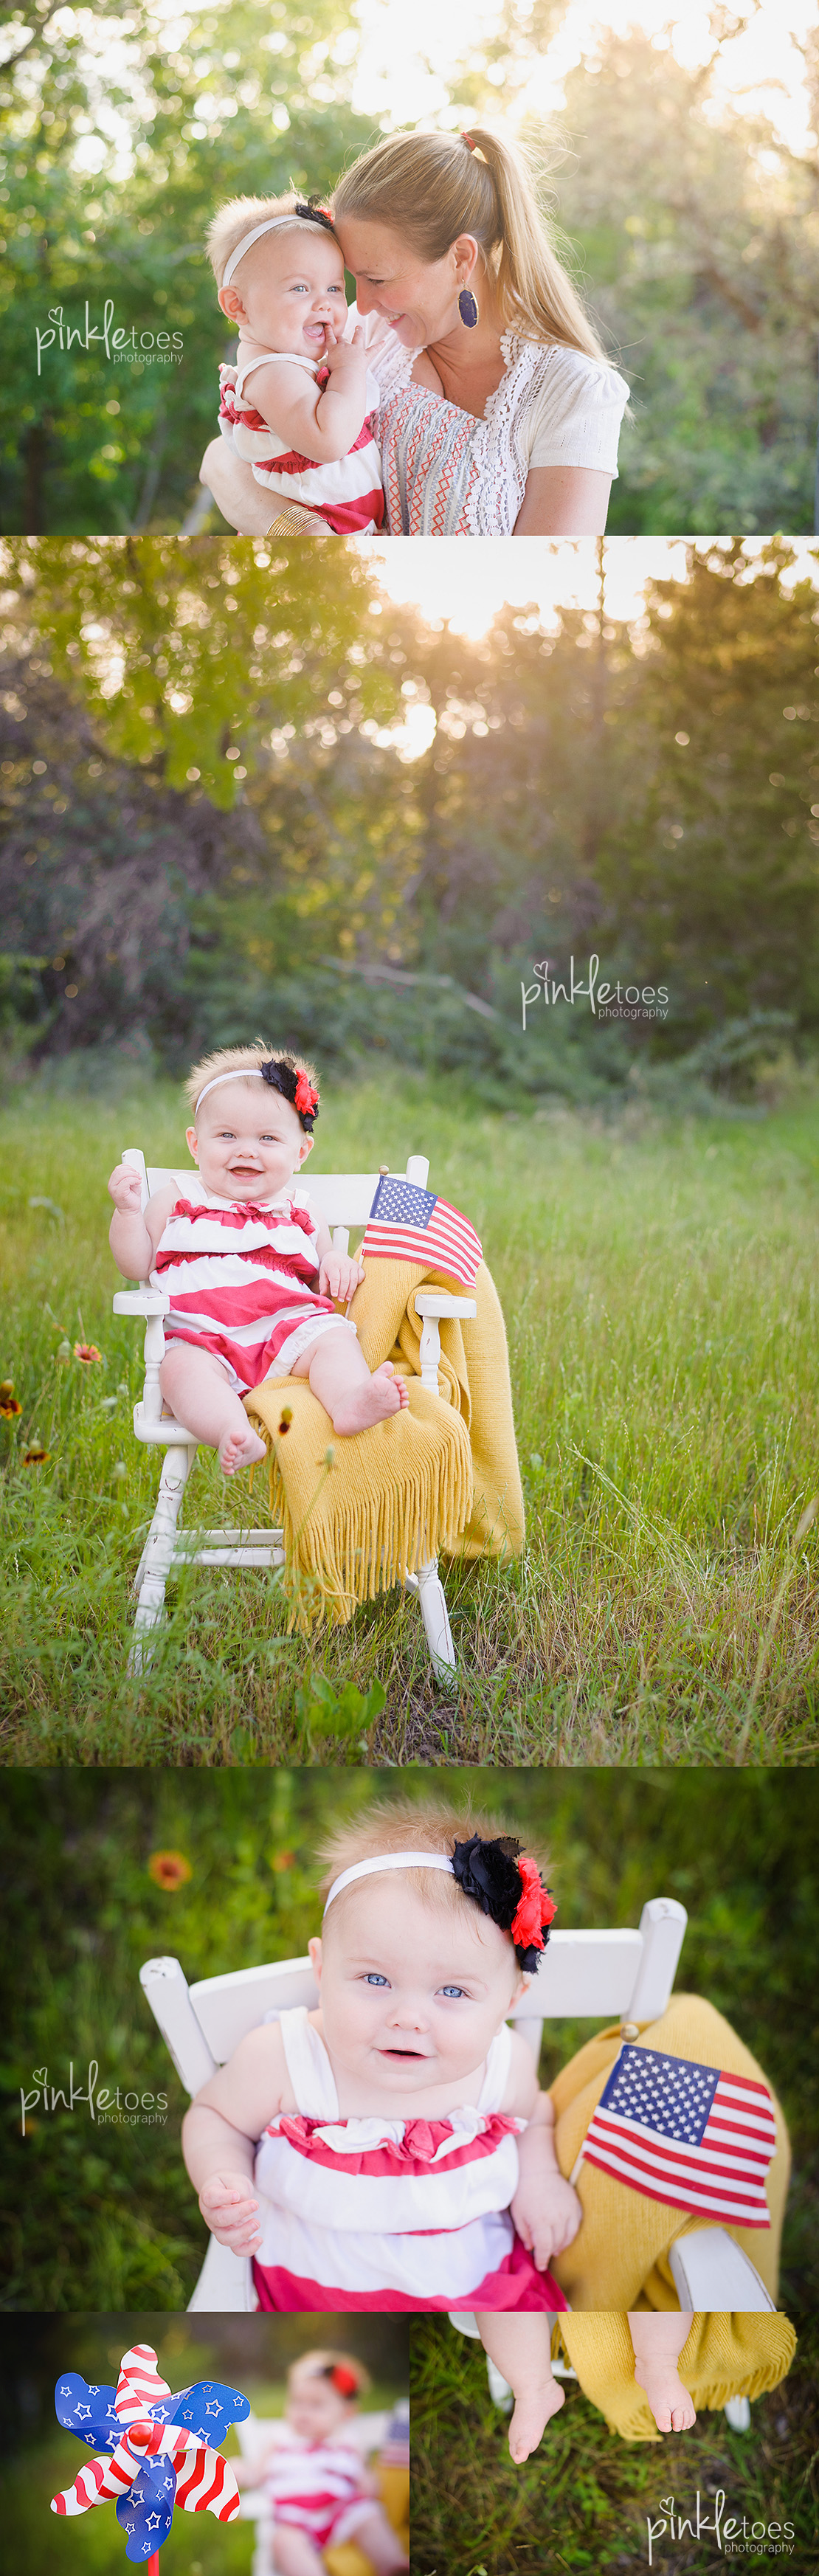 austin-july-4th-baby-photographer-high-chair-patriotic-photo-shoot